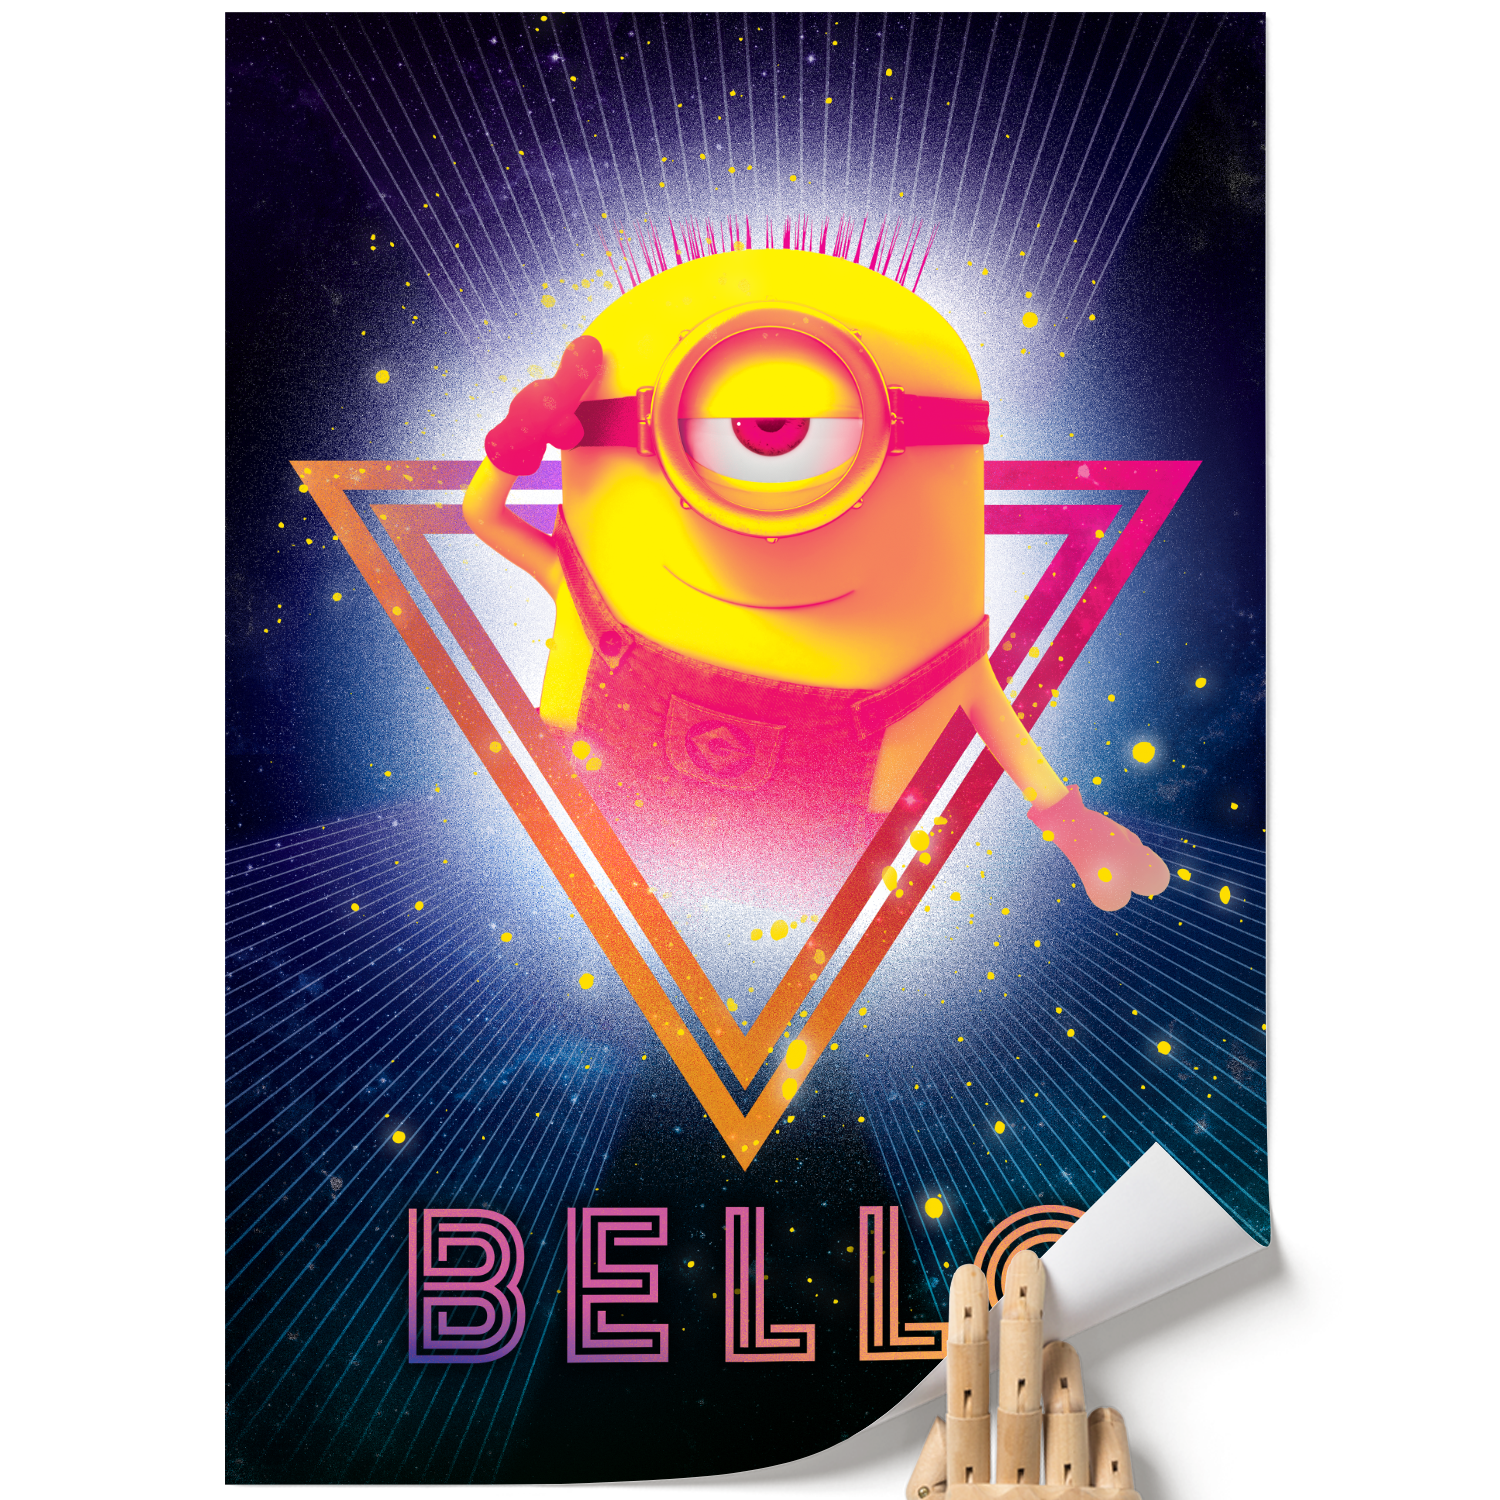 A3 Poster - Bello - Despicable Me/Minions